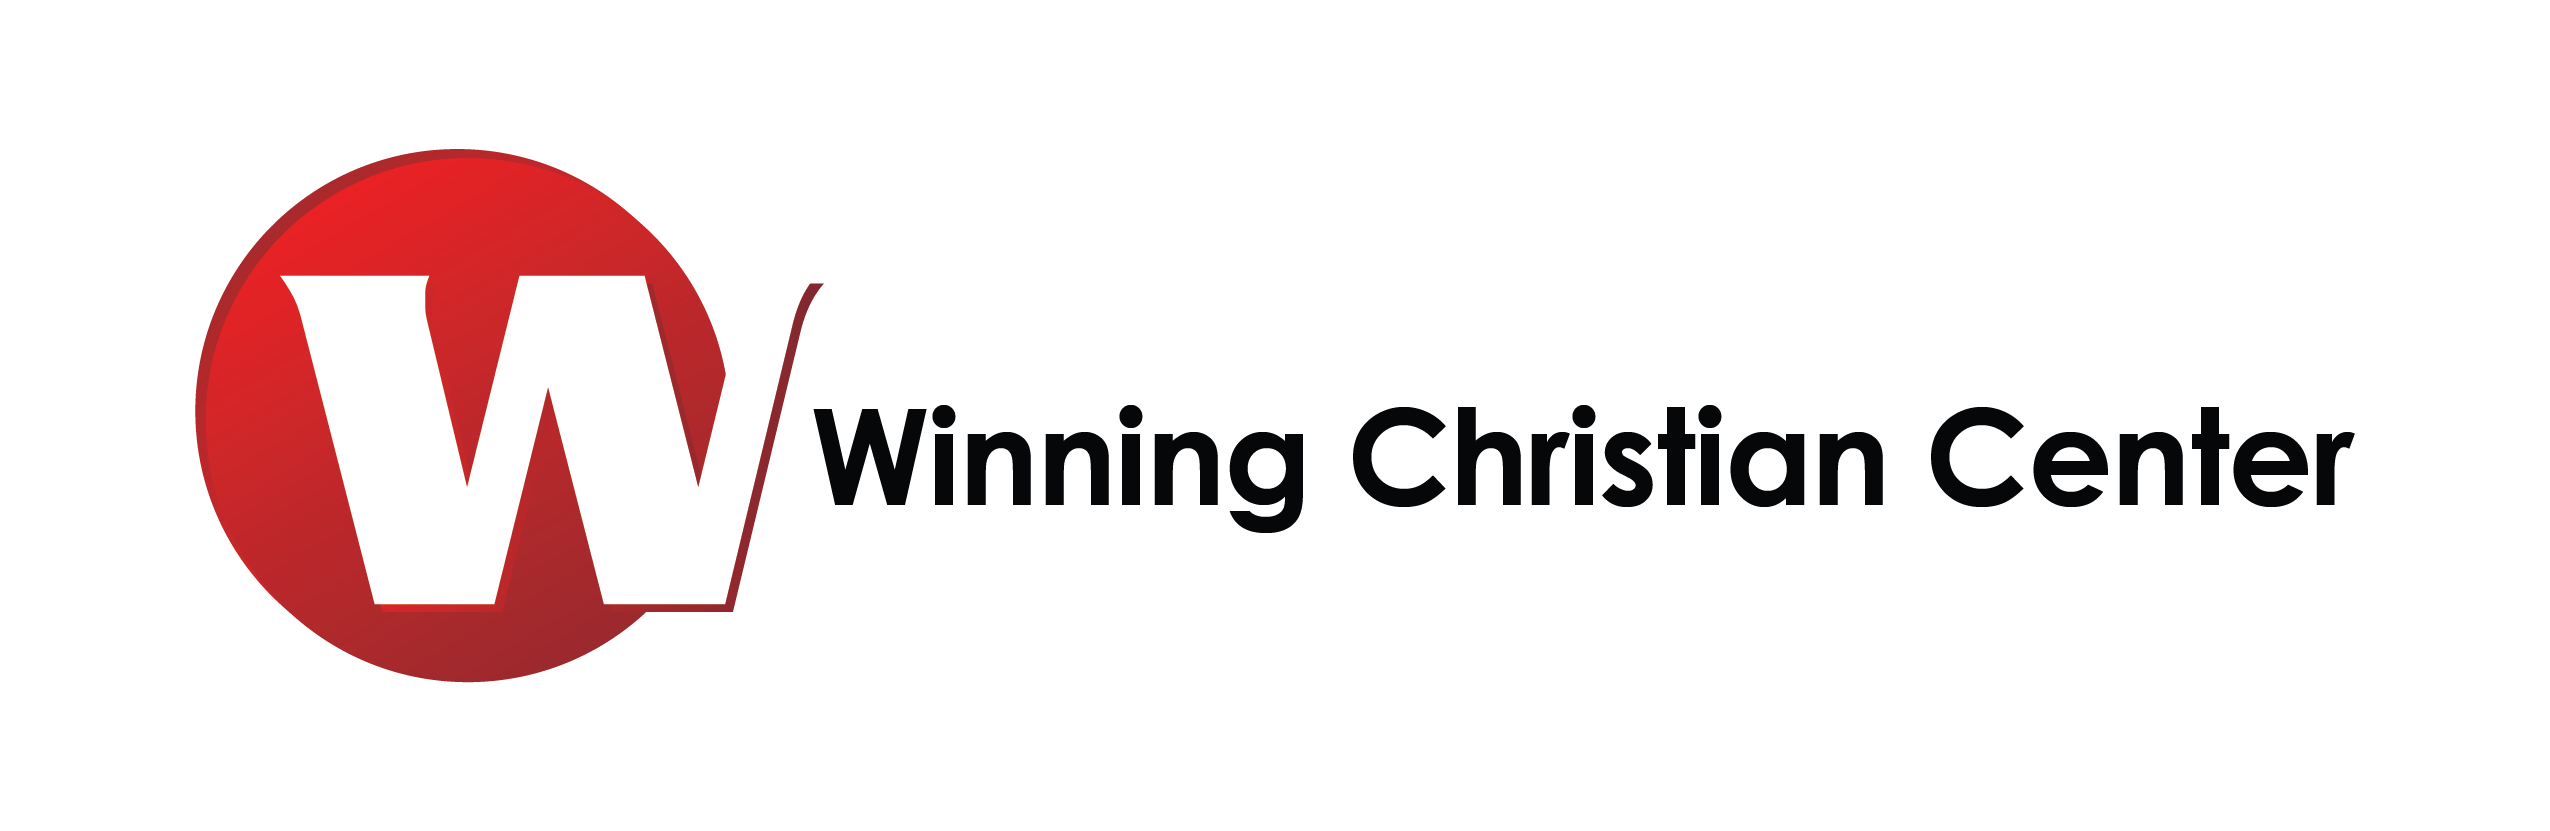 Winning Christian Center